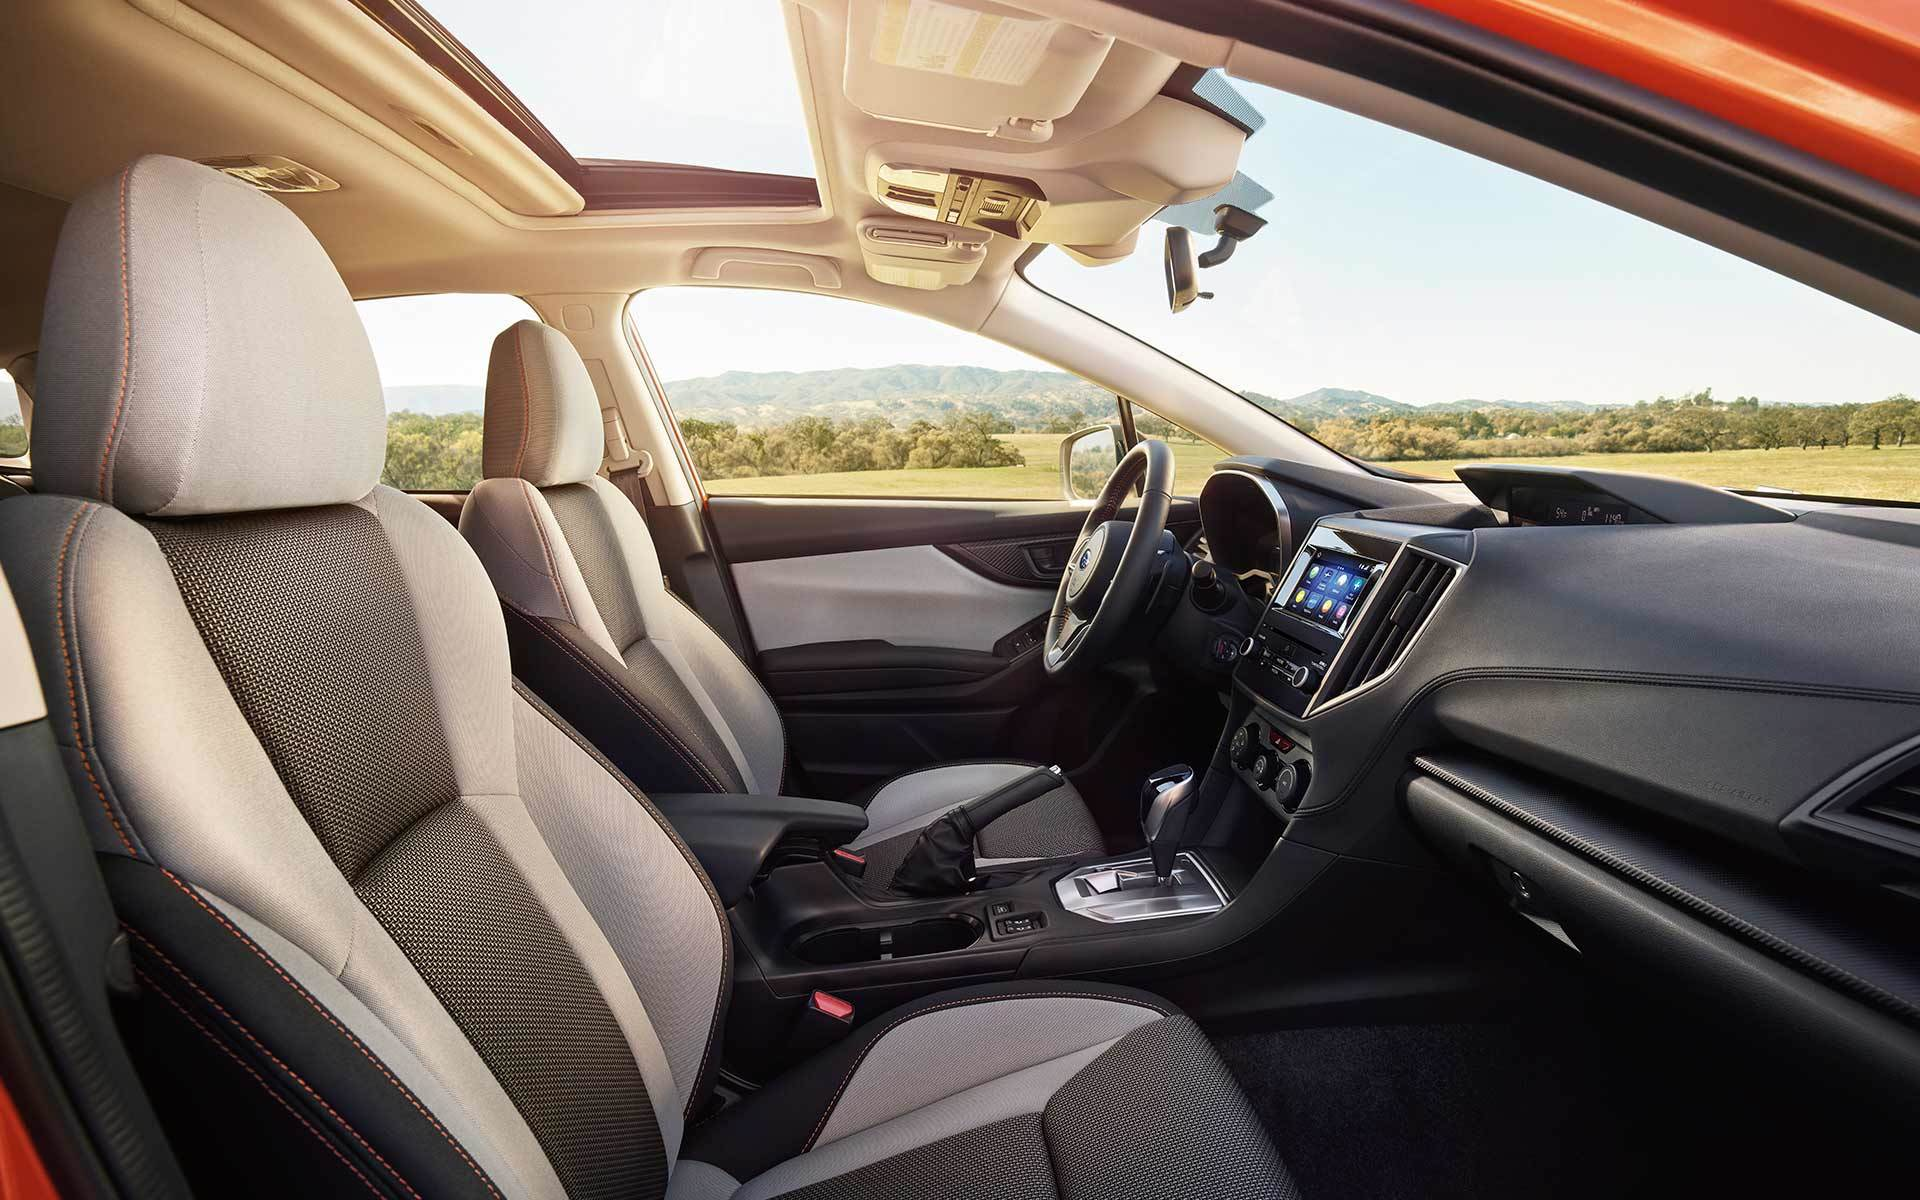 Effect vehicle modifications made for persons with disabilities may have on SUBARU advanced frontal airbag system operation (U.S